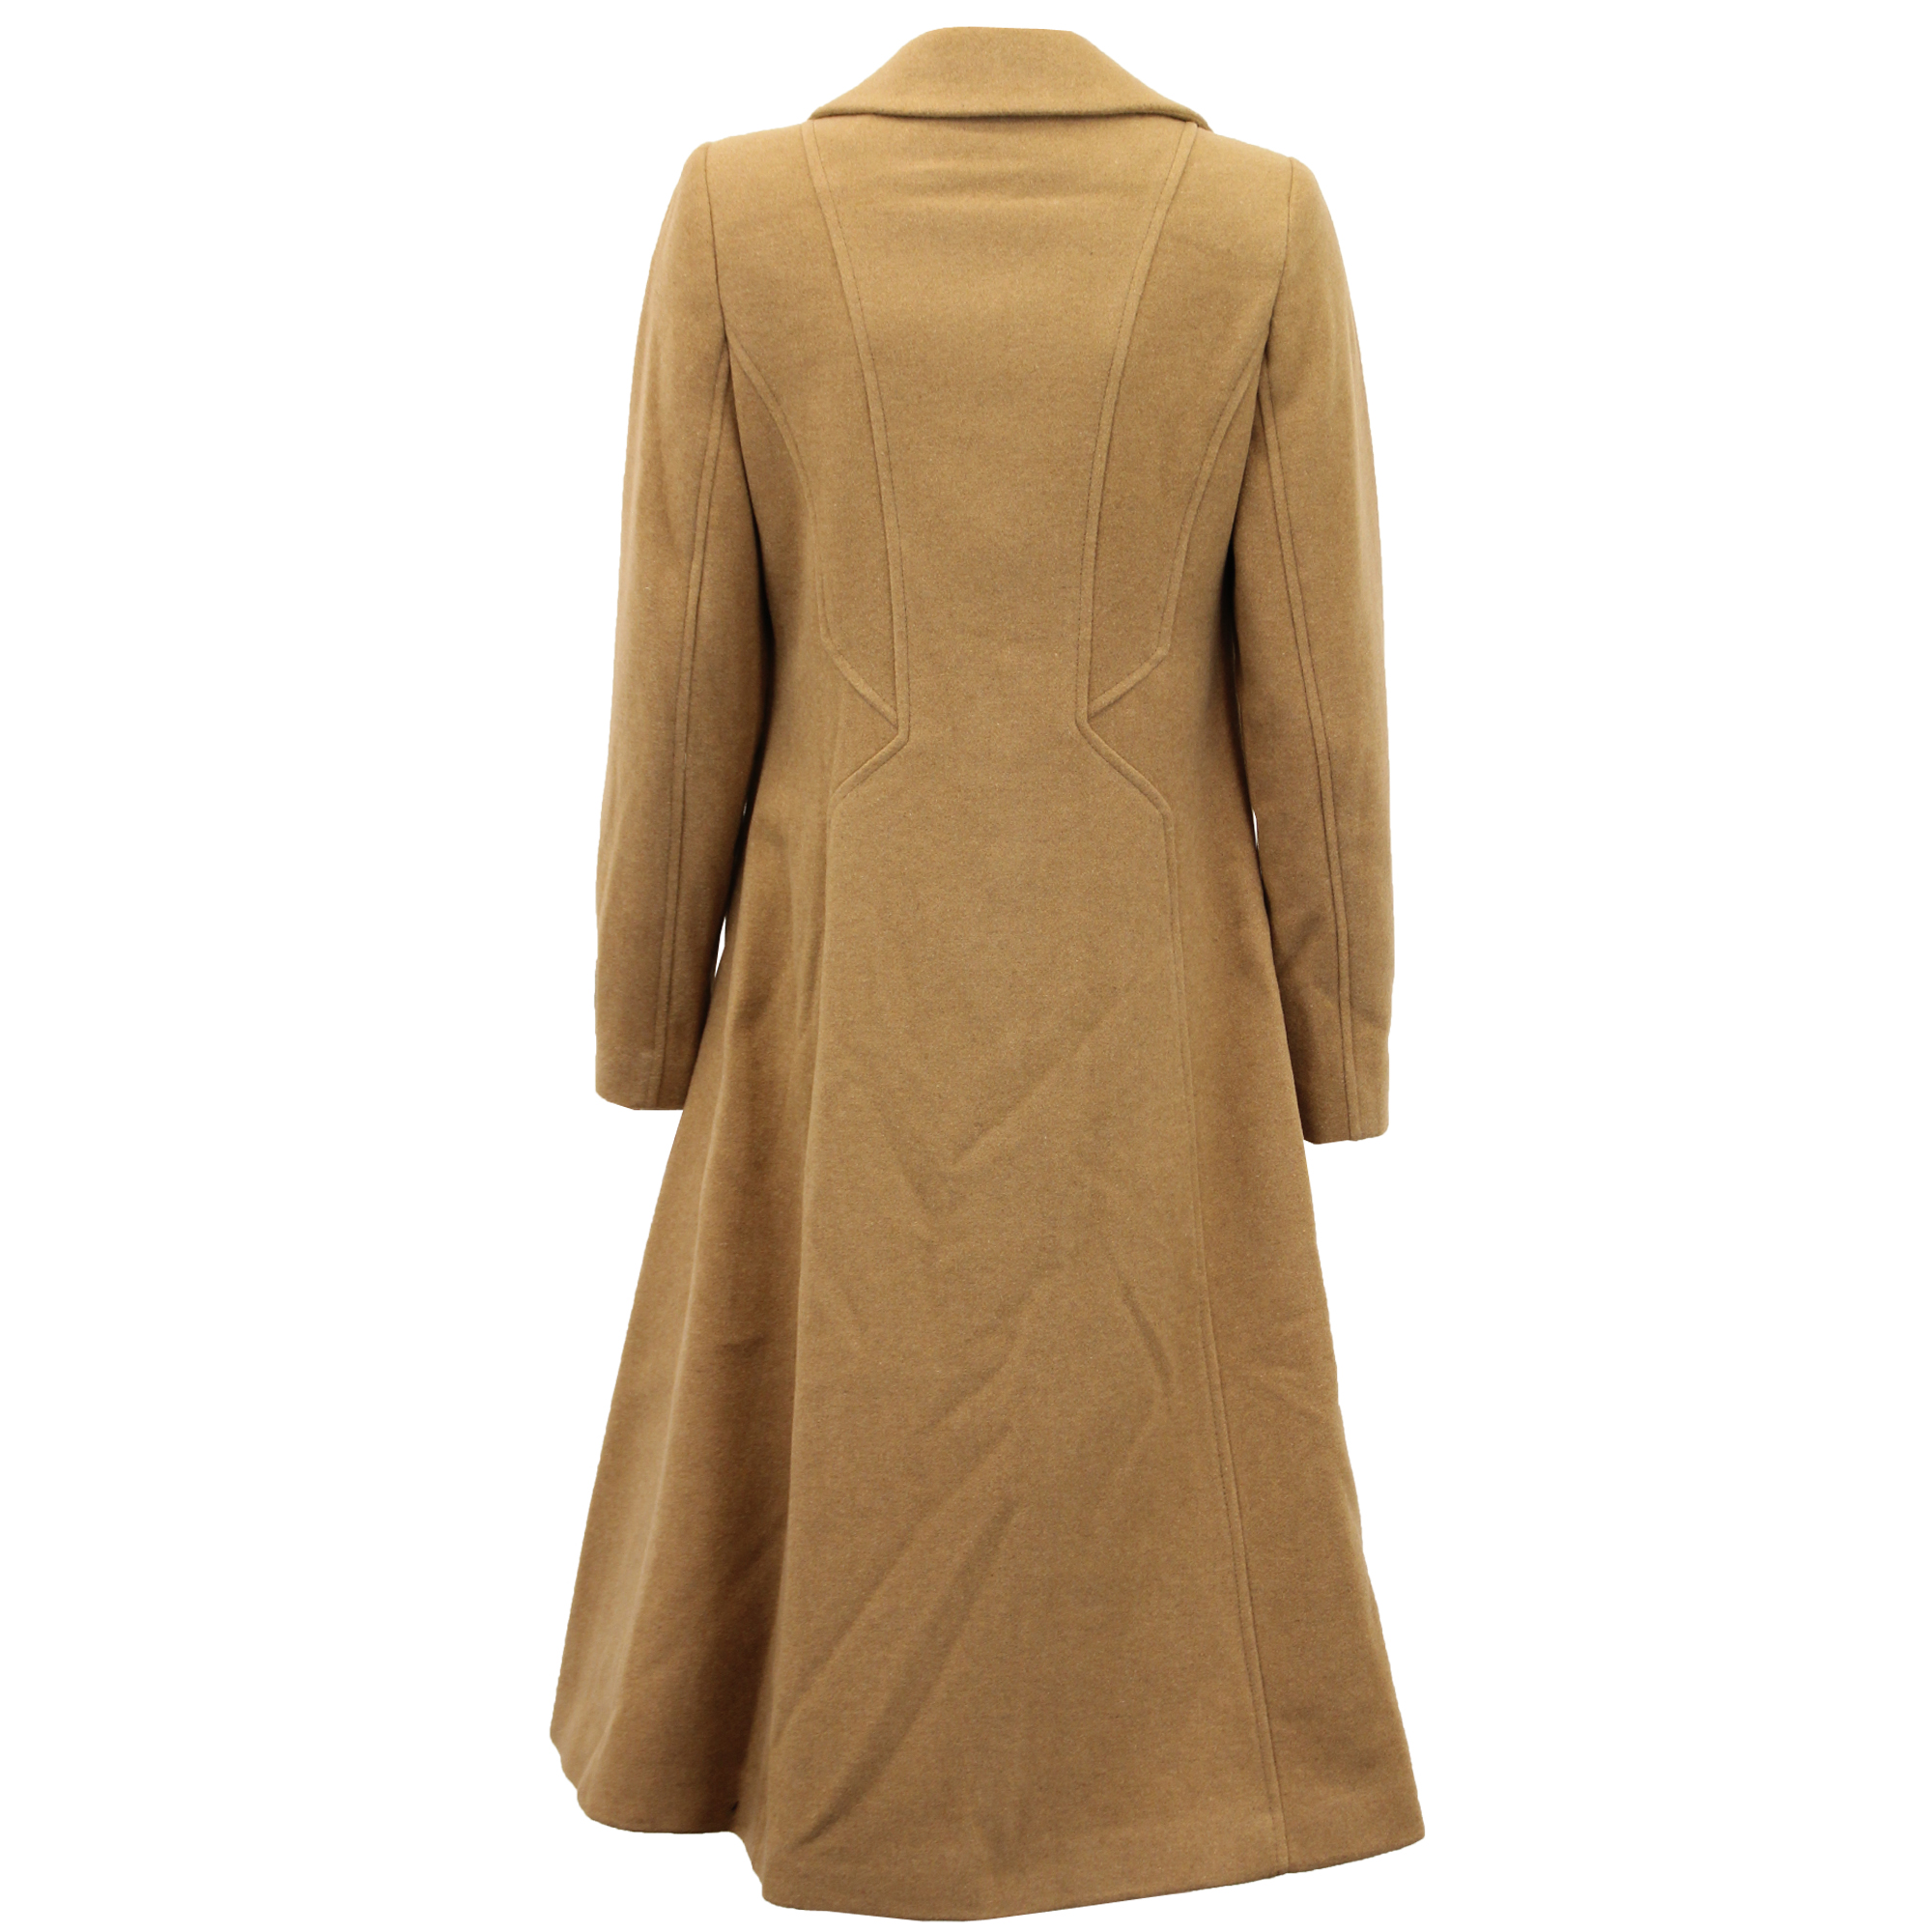 Ladies-Wool-Cashmere-Coat-Women-Jacket-Outerwear-Trench-Overcoat-Winter-Lined thumbnail 31